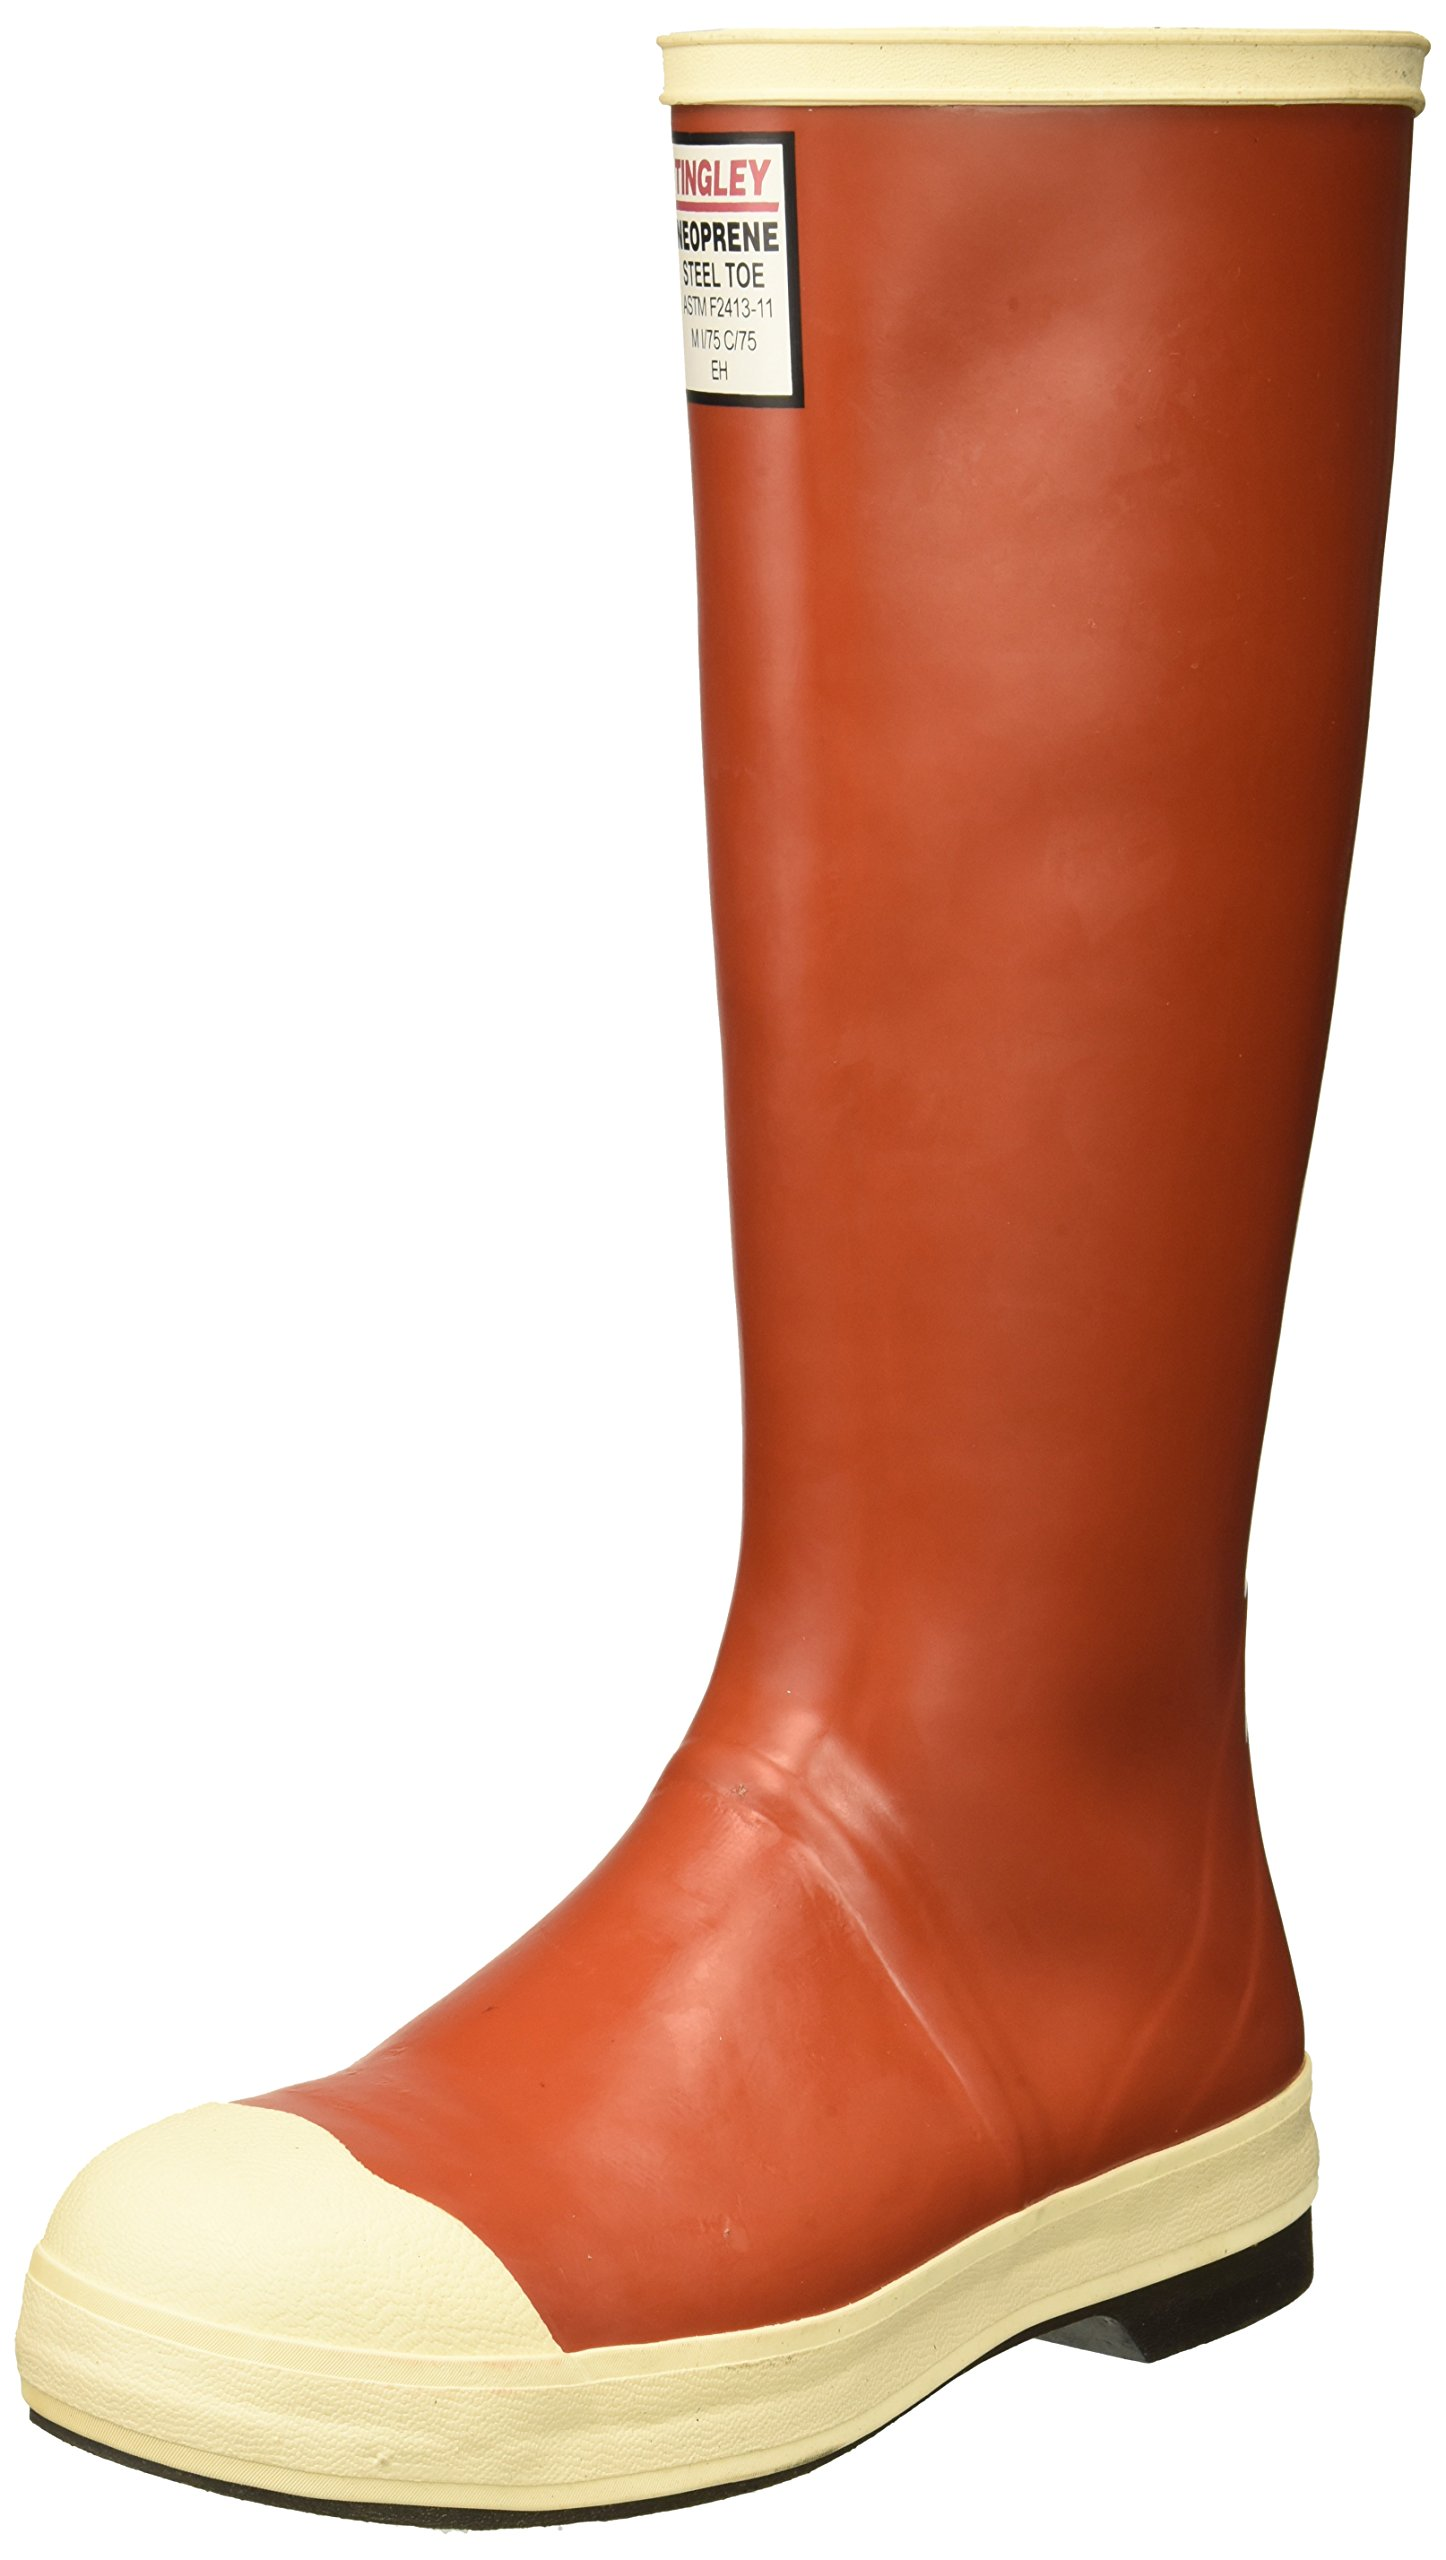 TINGLEY MB921B.06 16'' Chevron Outsole Neoprene Boot with Fabric Liner Plain Toe, Size 06, Brick Red/Brown